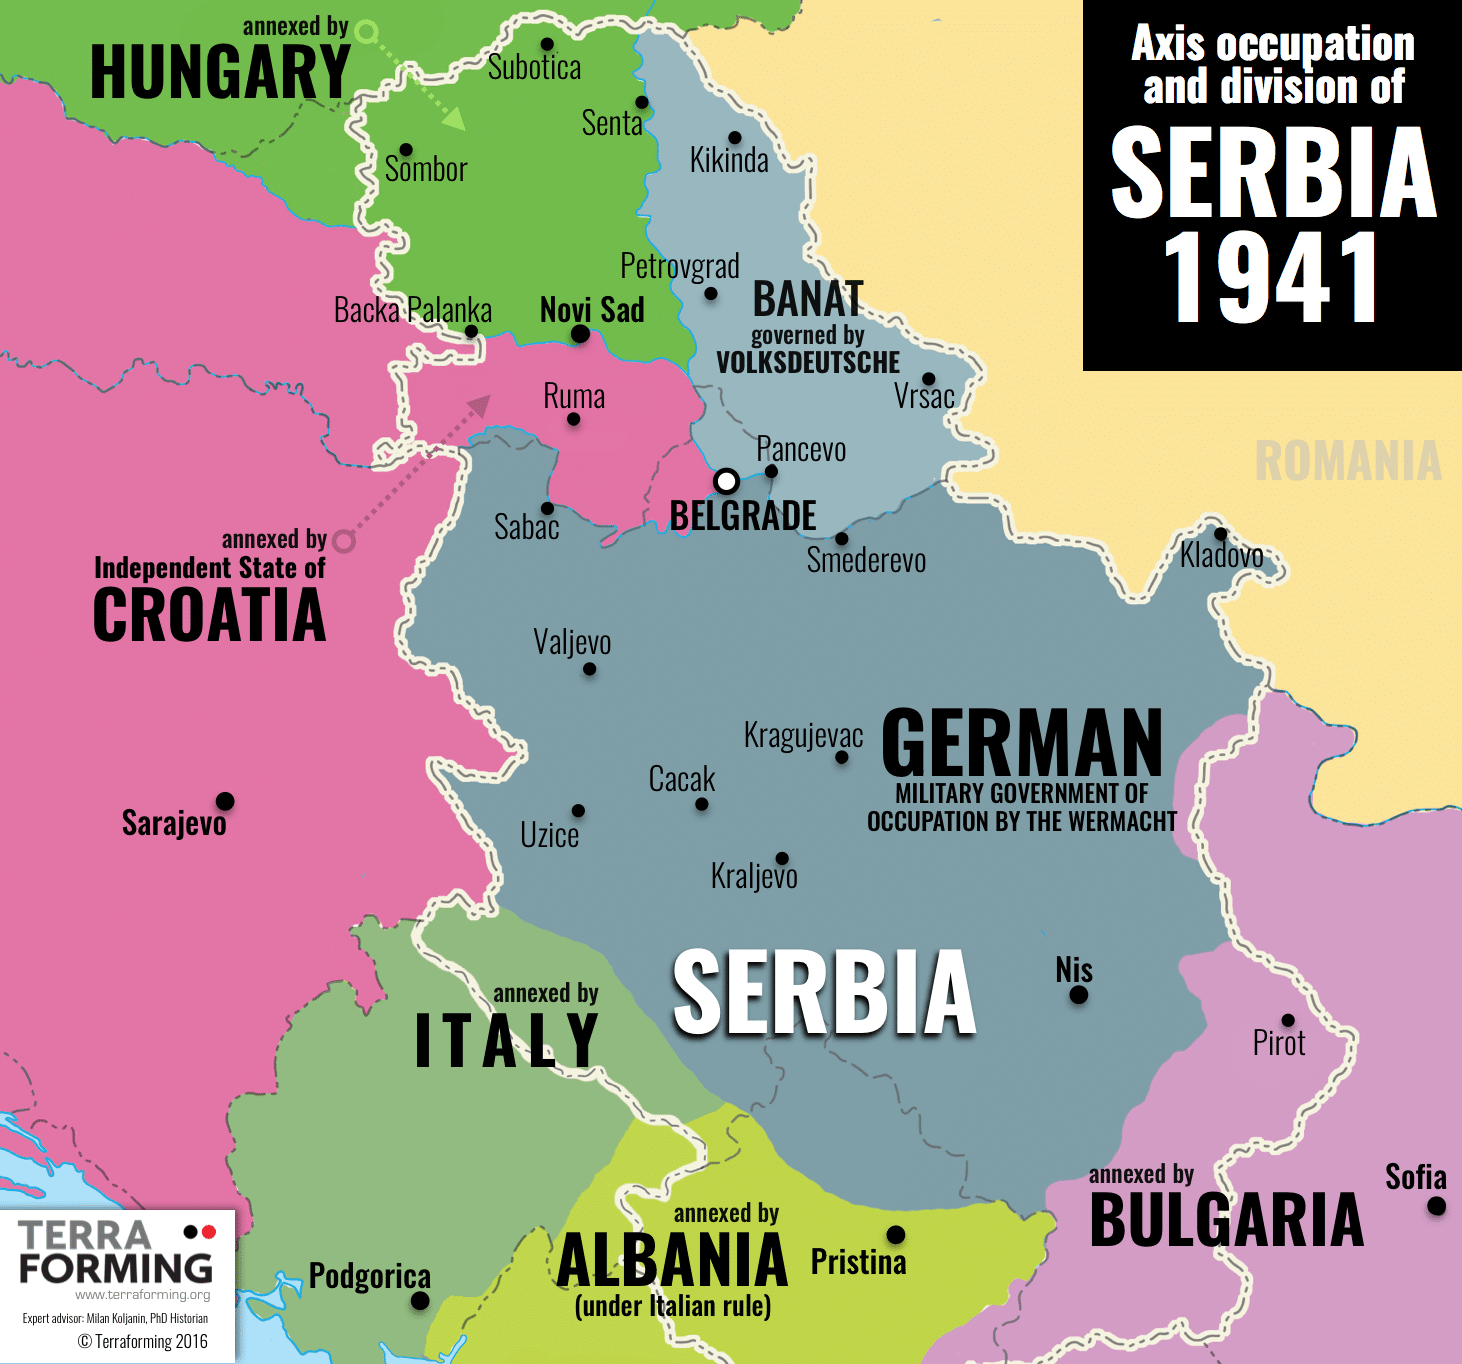 Axis Occupation and Division of Serbia 1941 - Map